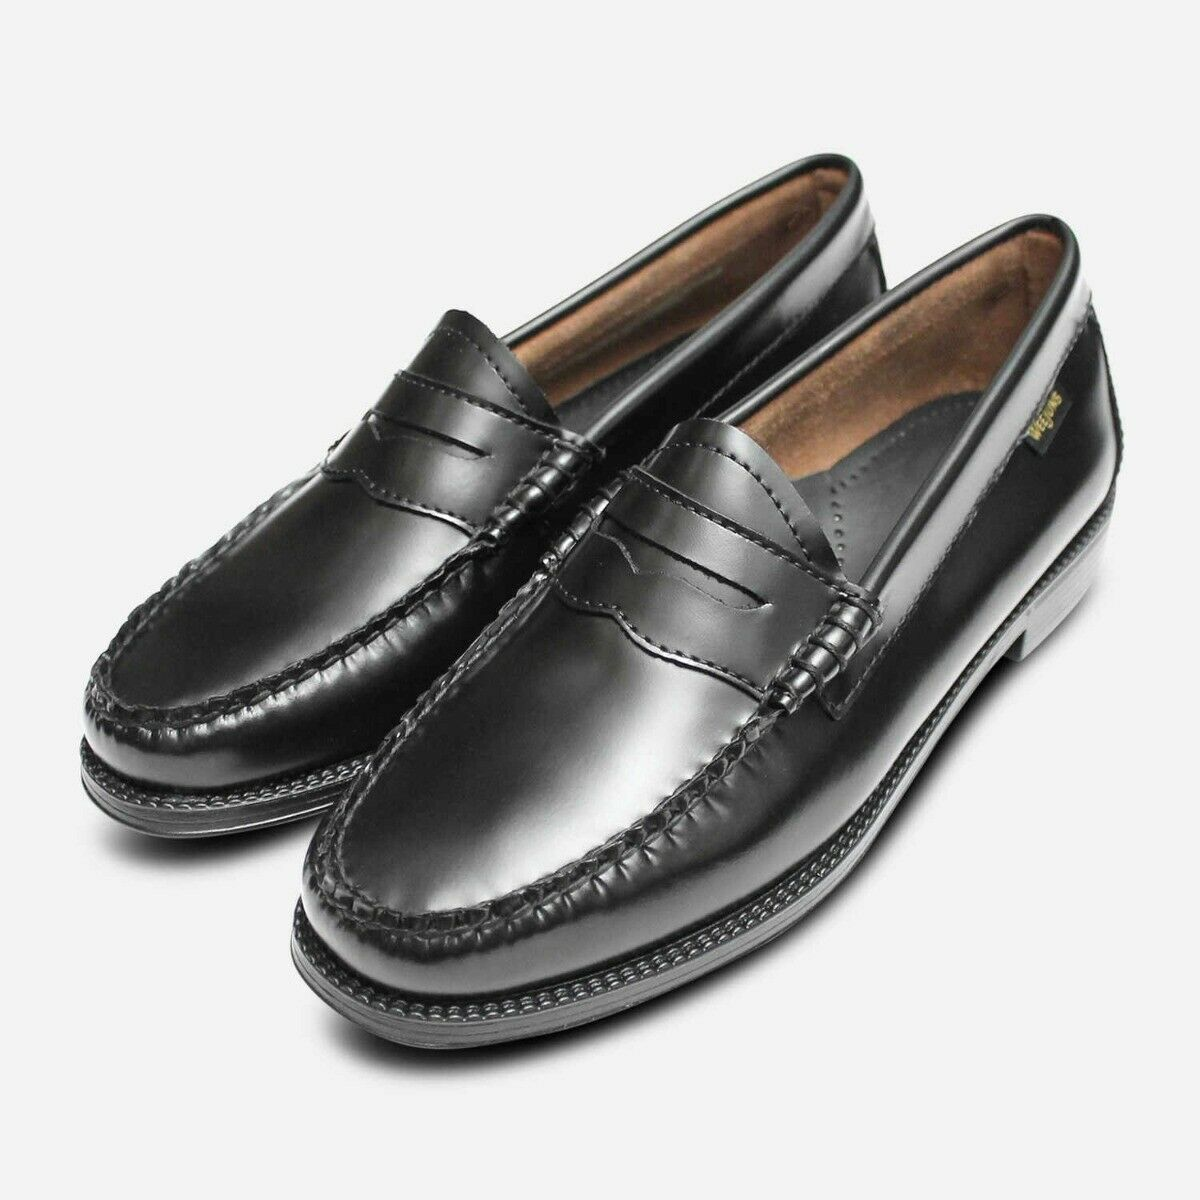 Bass Weejun II Loafers in Black Leather with Rubber Sole